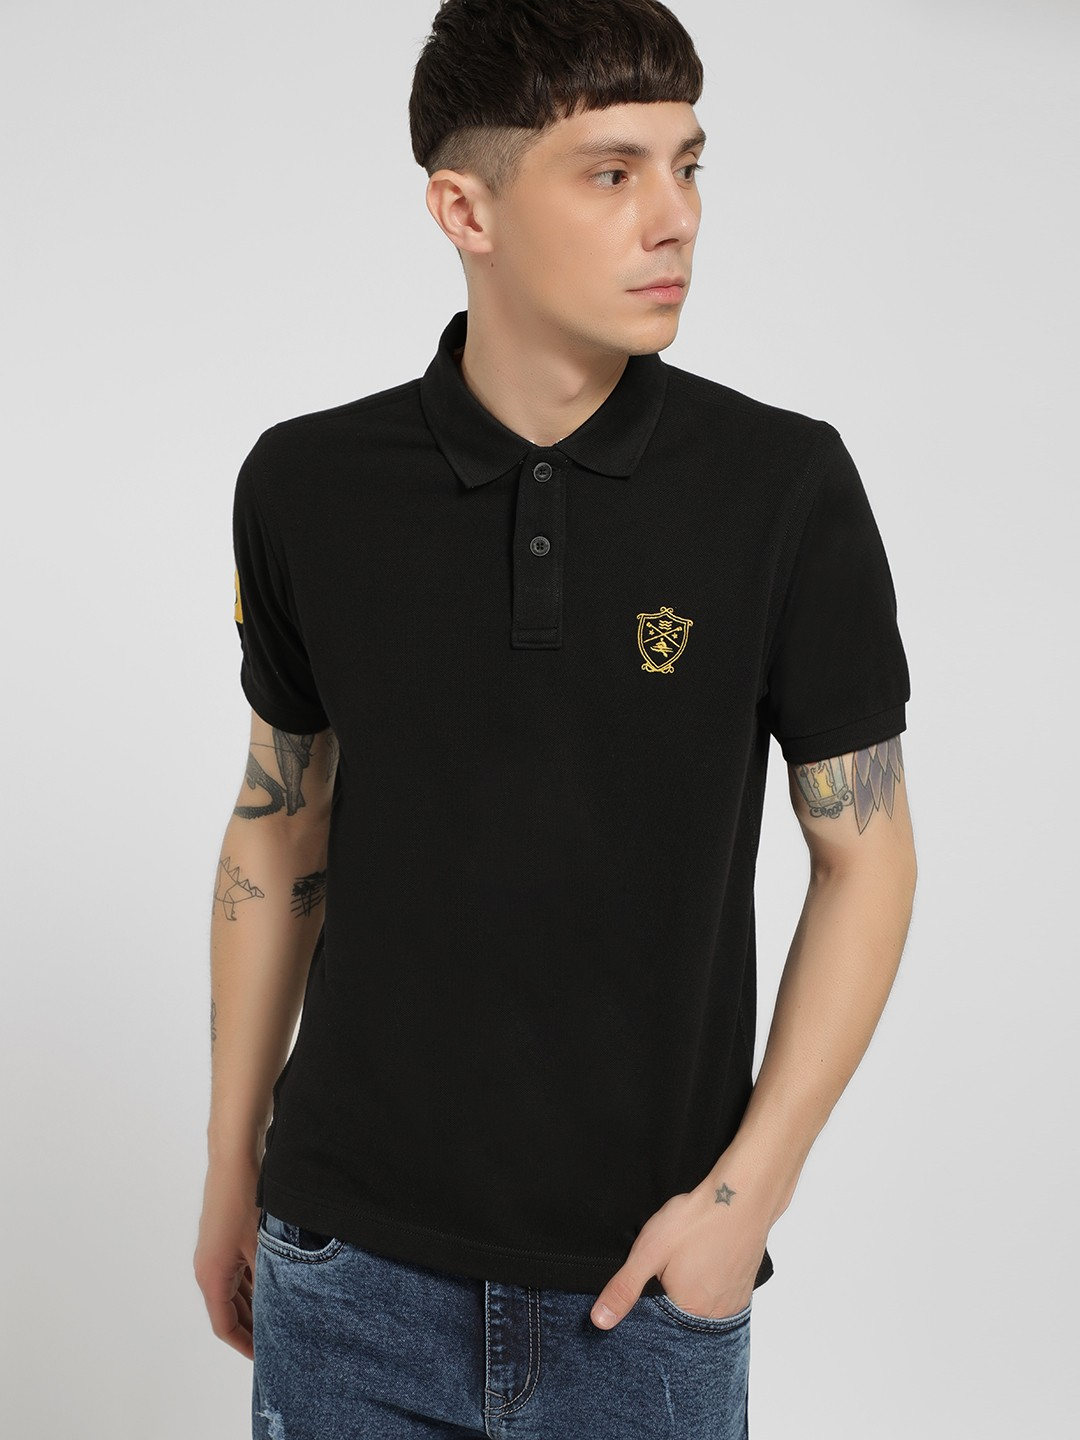 SCULLERS Black Basic Polo Shirt 1